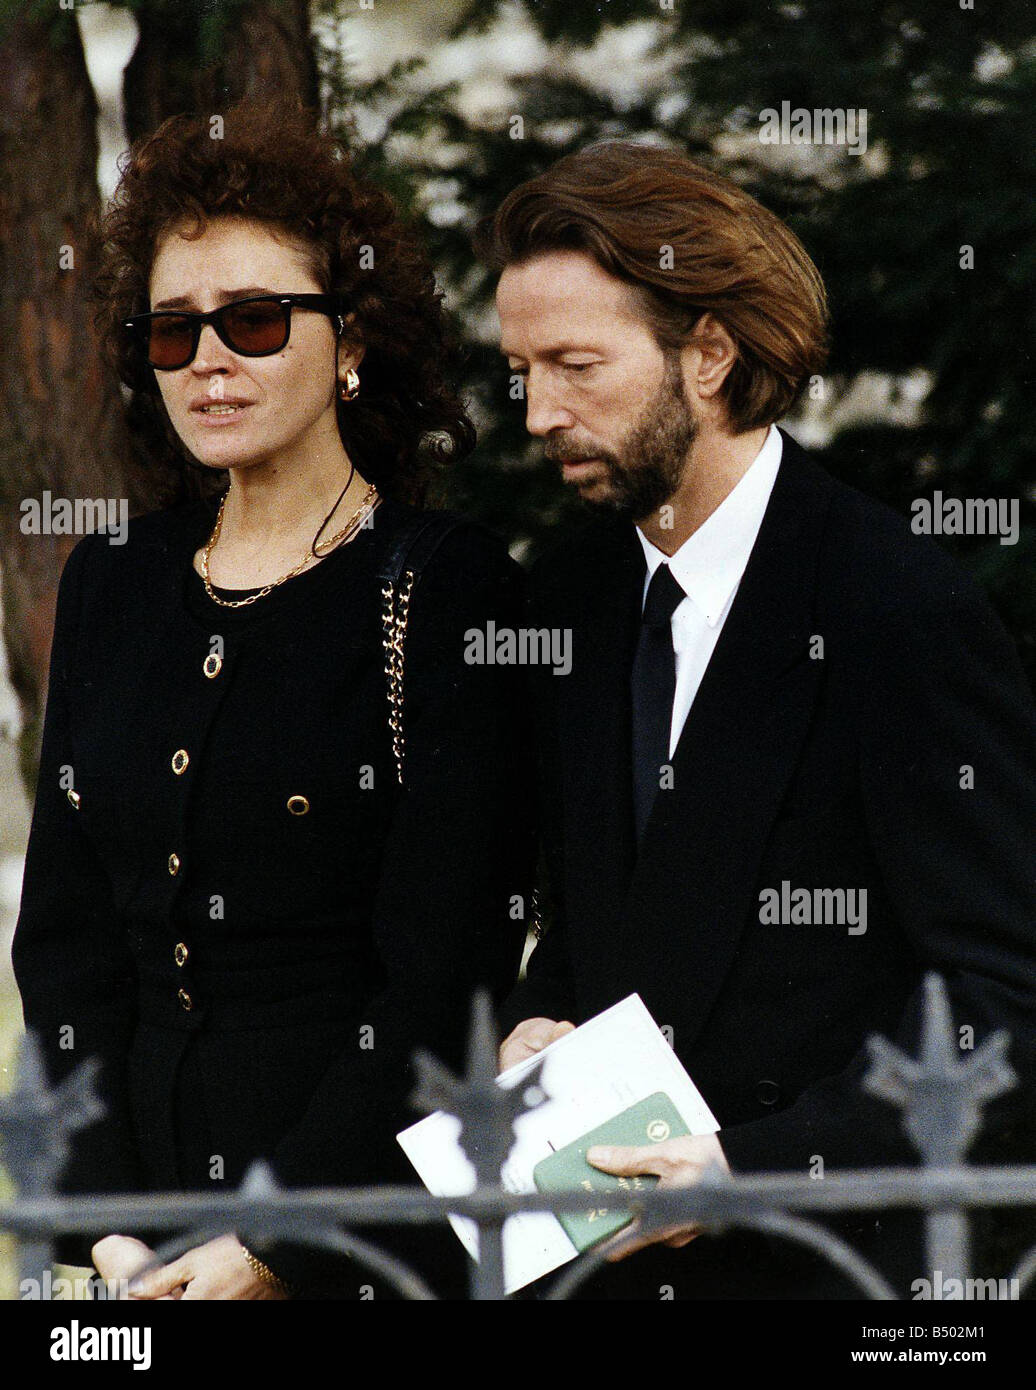 eric clapton singer and rock guitarist with the mother of his son stock photo 20285777 alamy. Black Bedroom Furniture Sets. Home Design Ideas